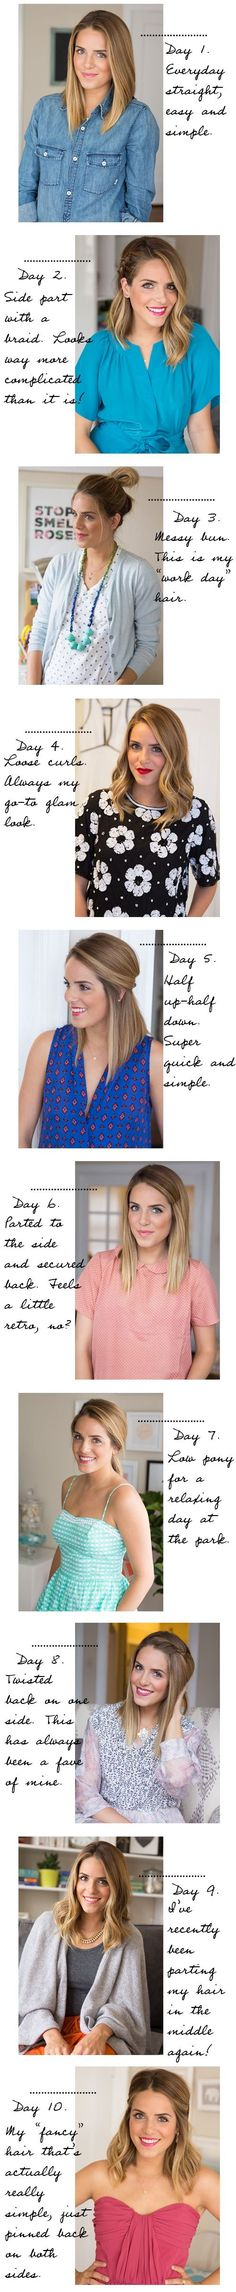 10 days of shoulder-length hair styles nail, idea, makeup, length, hairstyl, beauti, hair style, cut, snelson snelson